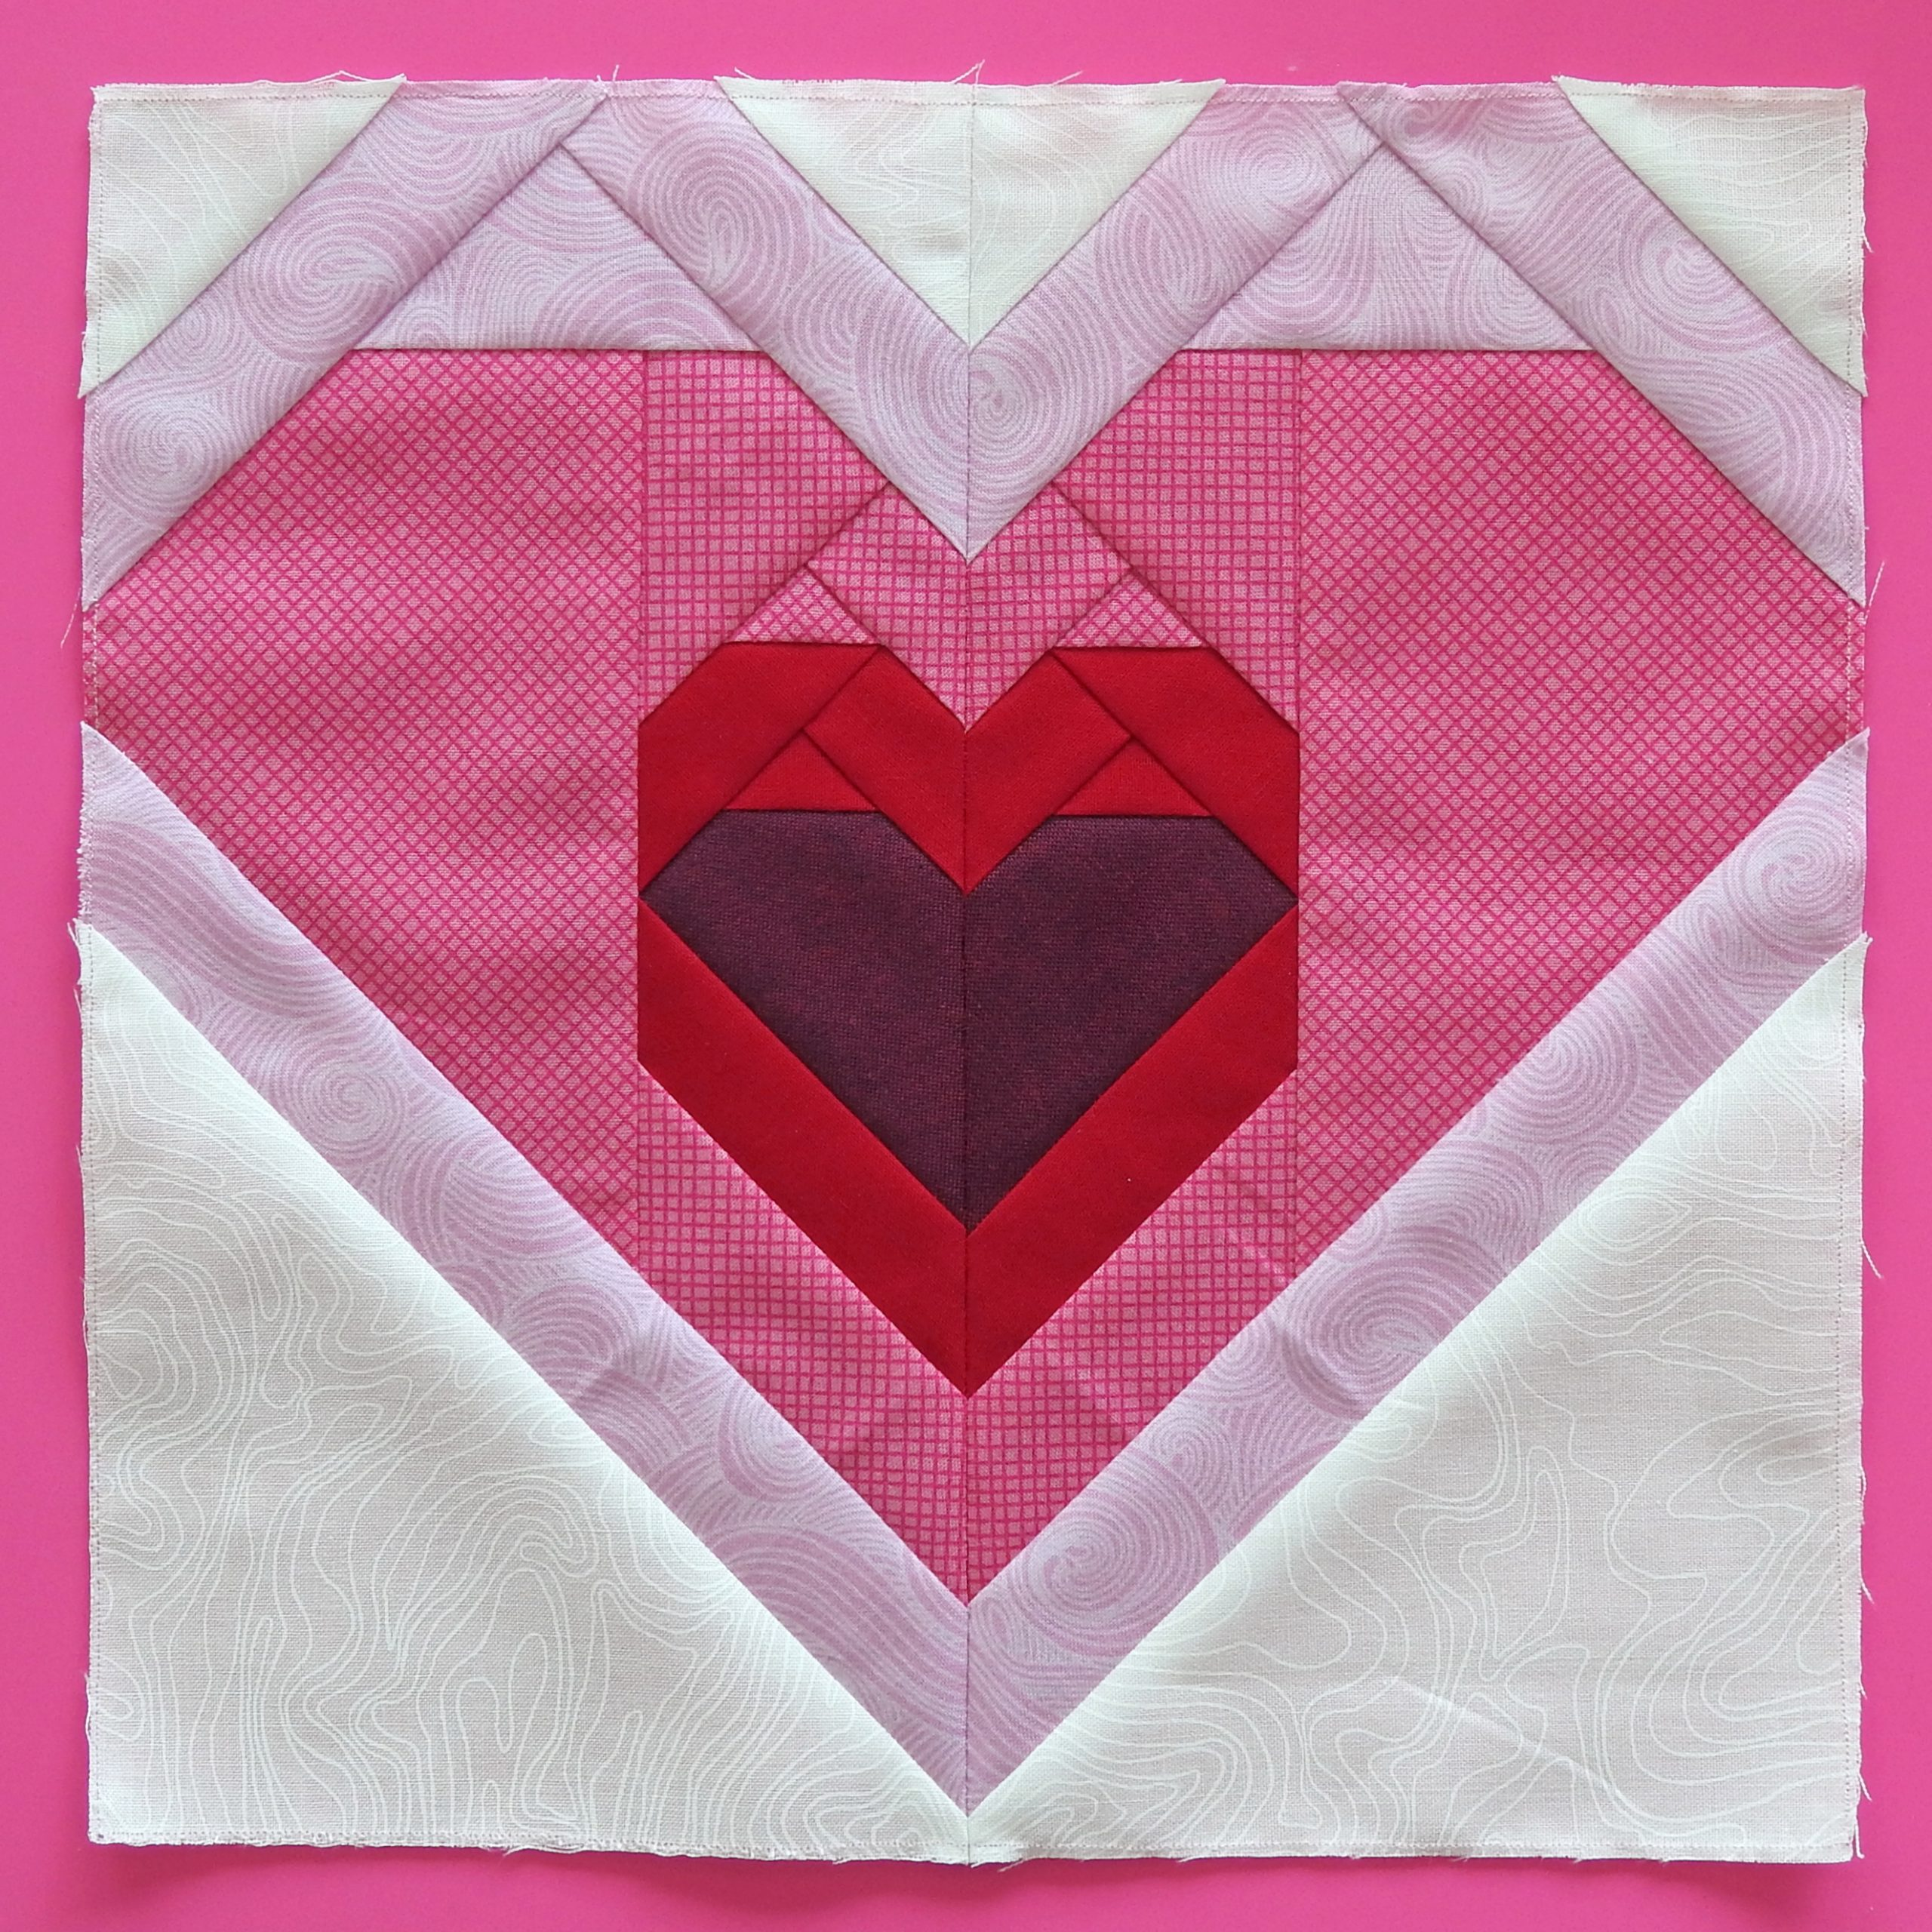 Heart in a Heart Block